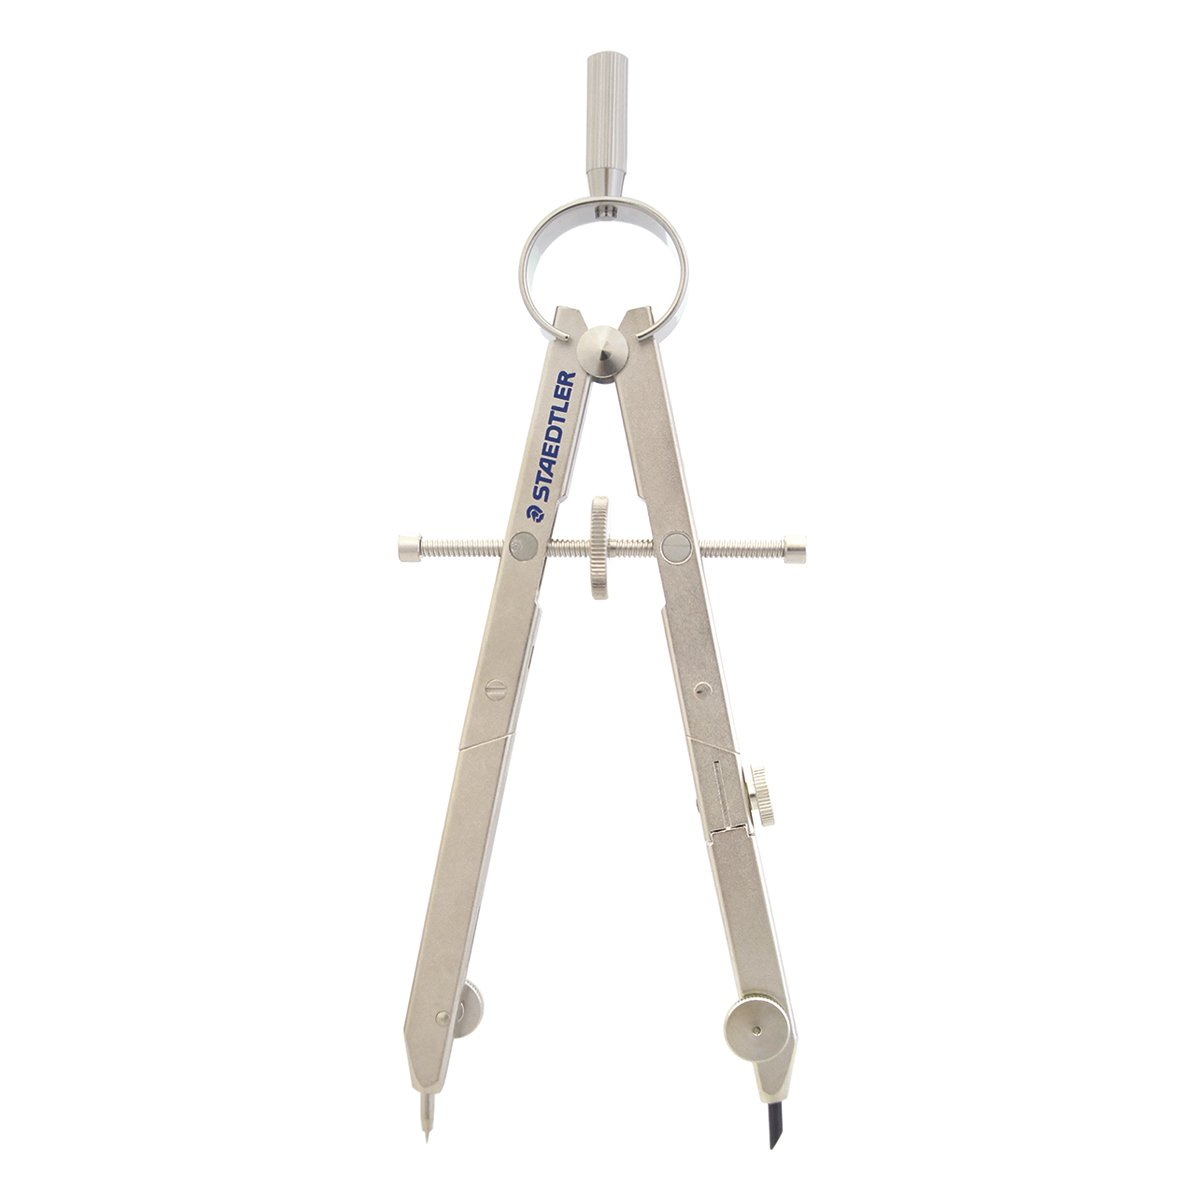 Staedtler Comfort Mars 551 Compass - Bow Instrument with Center Wheel by Staedtler (Image #2)